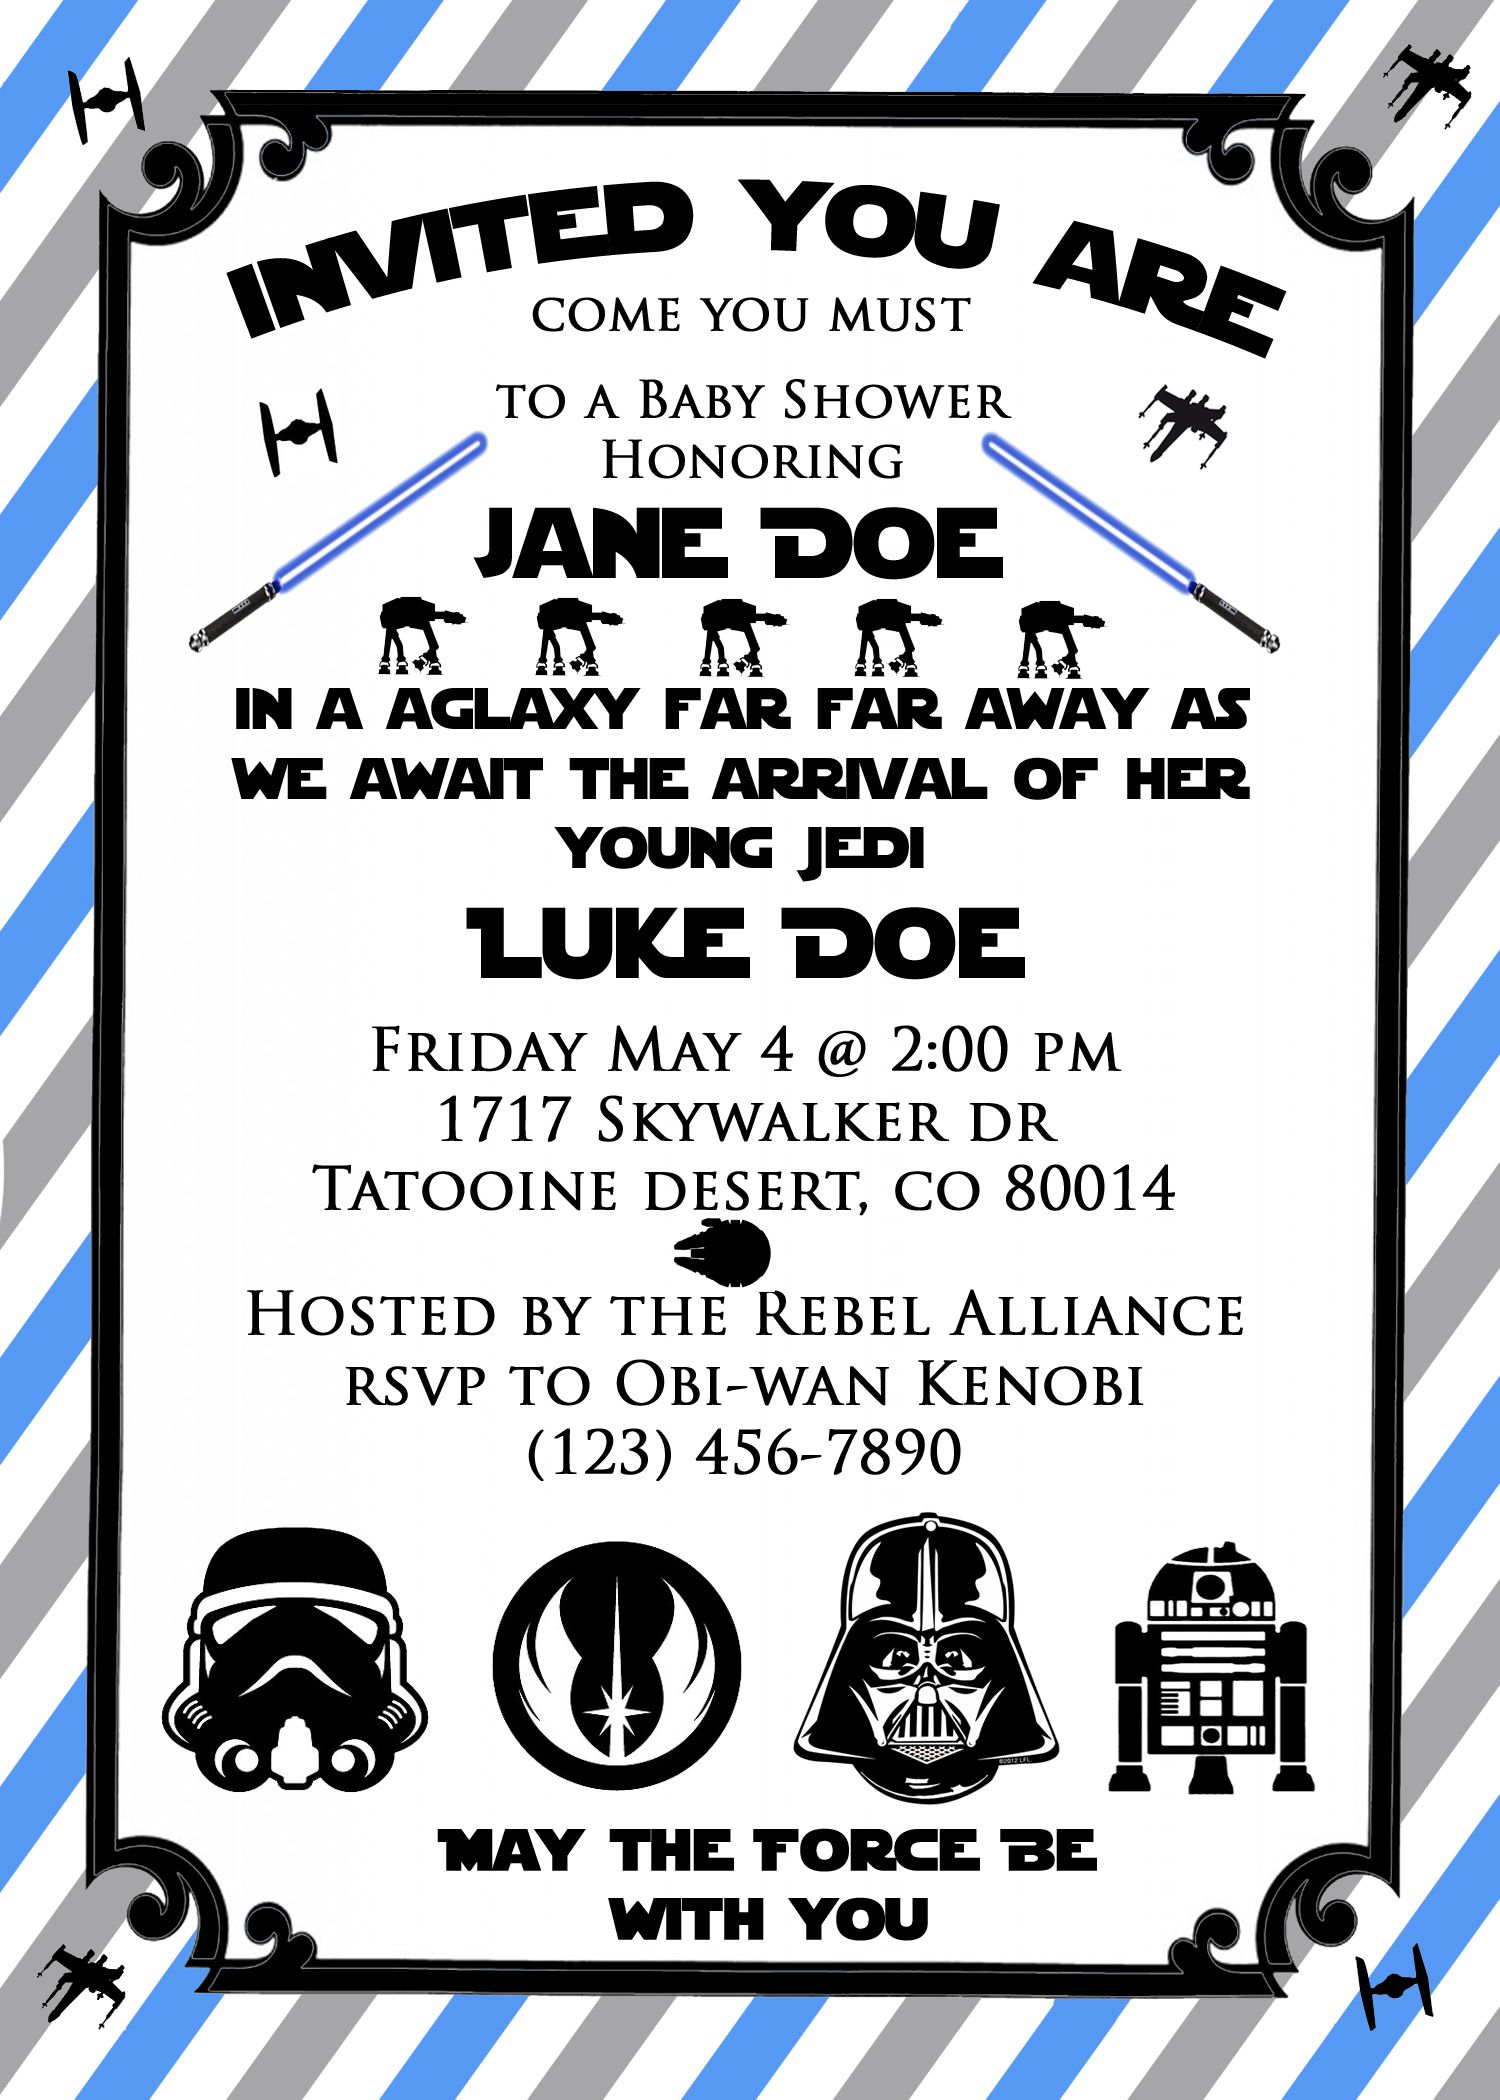 Star Wars Baby Shower Invite So Cute For A Star Wars Themed Baby Shower Or Even Birthday Party